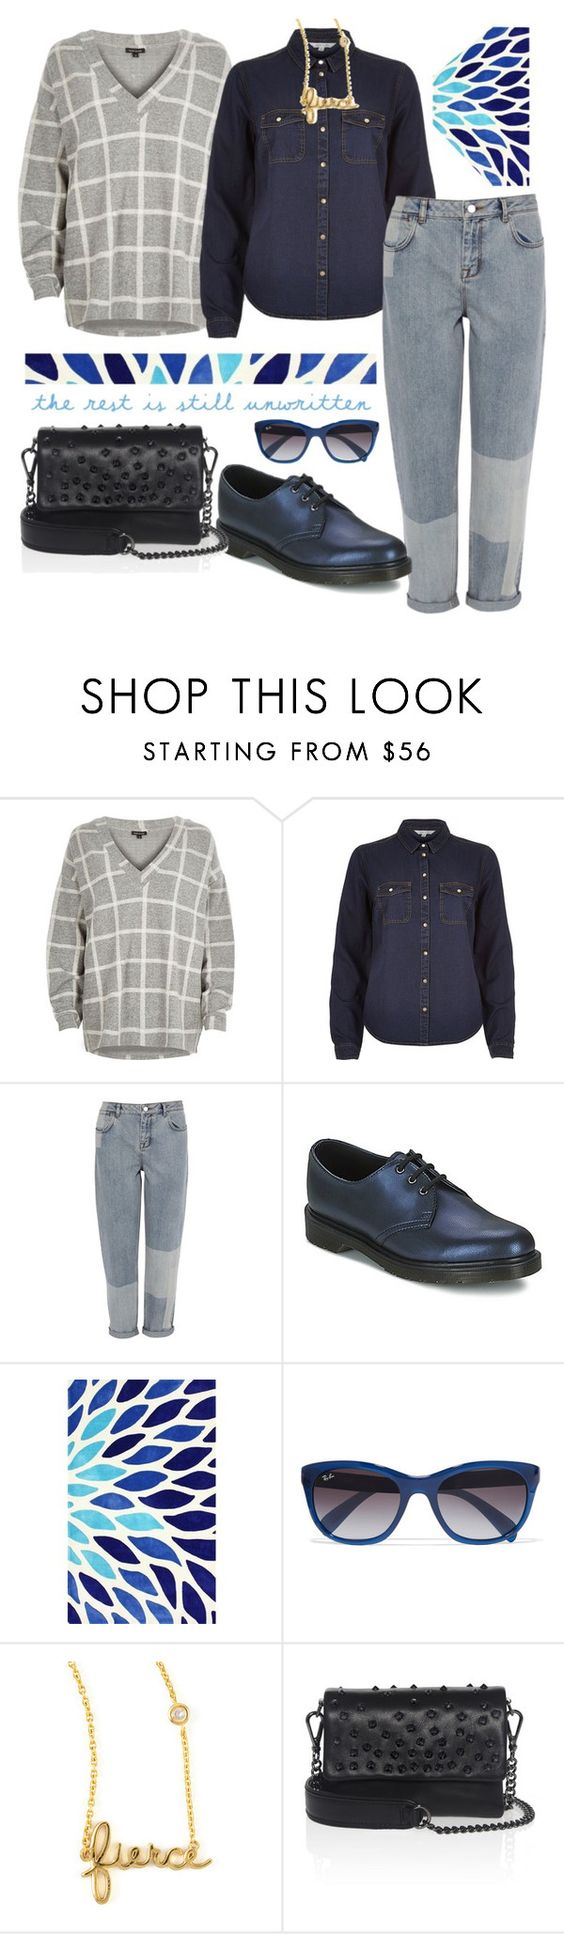 """""""《☆☆》"""" by bluveraa ❤ liked on Polyvore featuring River Island, Karen Millen, Dr. Martens, nuLOOM, Ray-Ban, Sydney Evan, Kurt Geiger, women's clothing, women and female"""